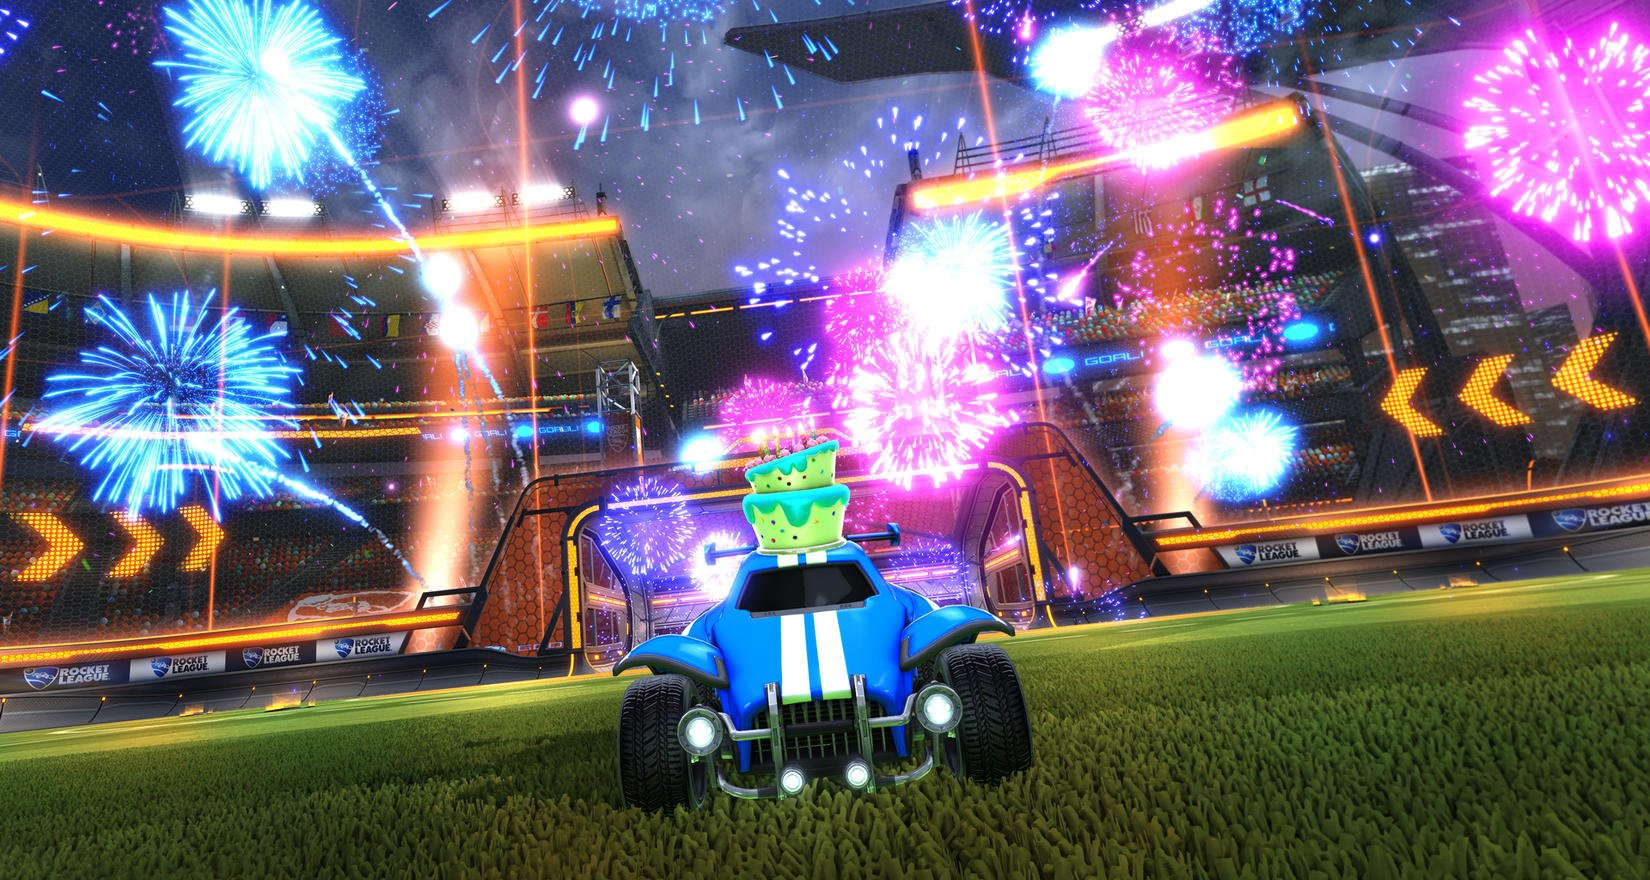 Rocket League's Fall Update is going to be absolutely packed screenshot